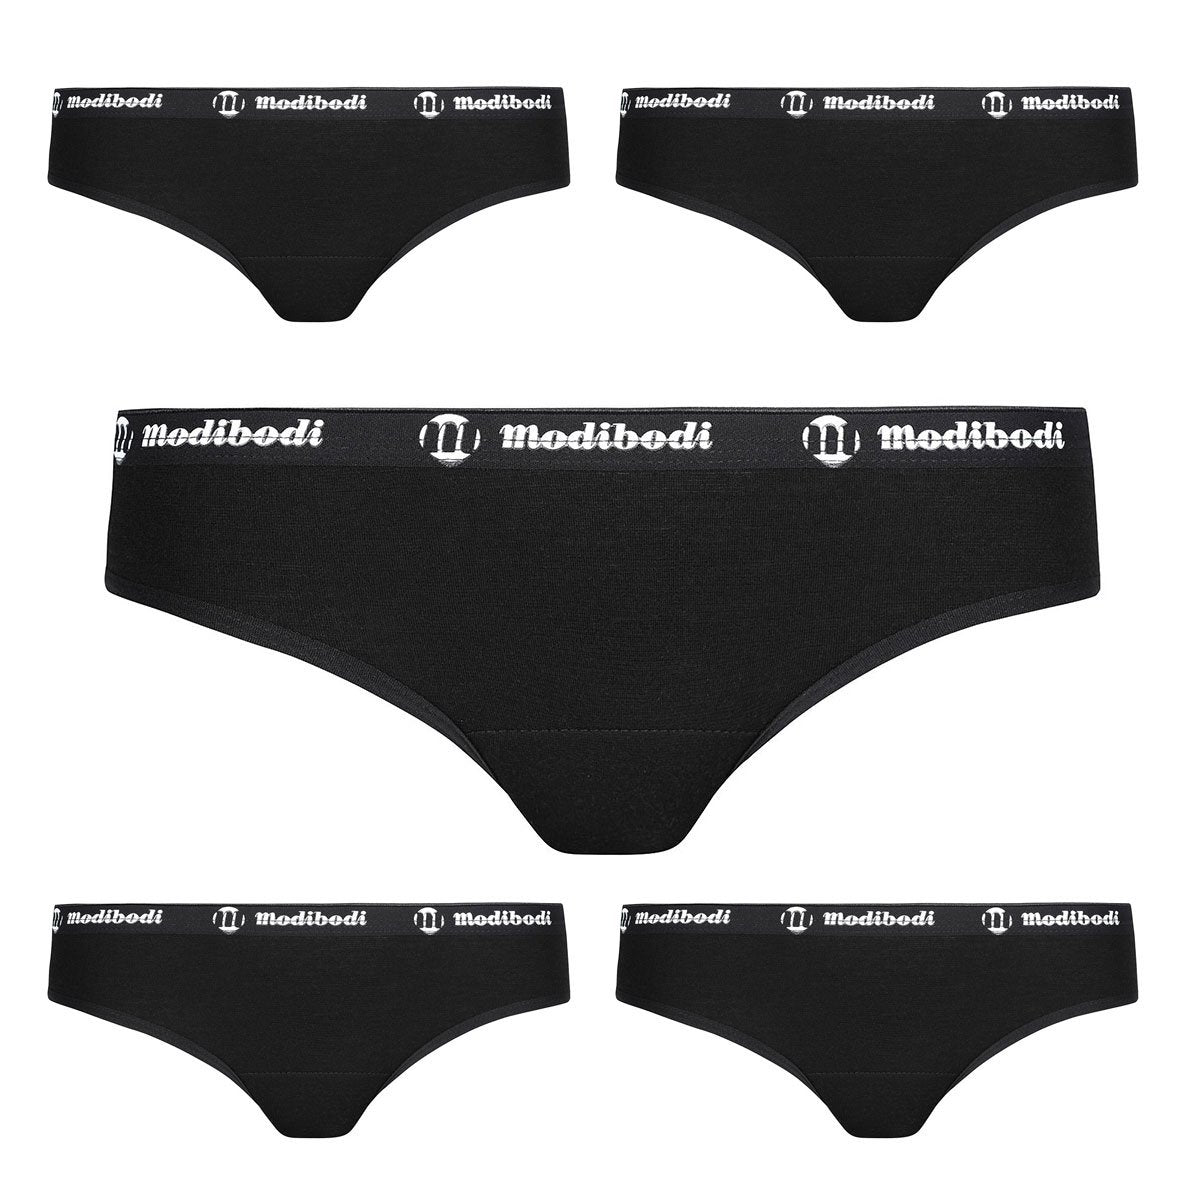 Modibodi Active Brief 5 Pack Black Light-Moderate Flatlay